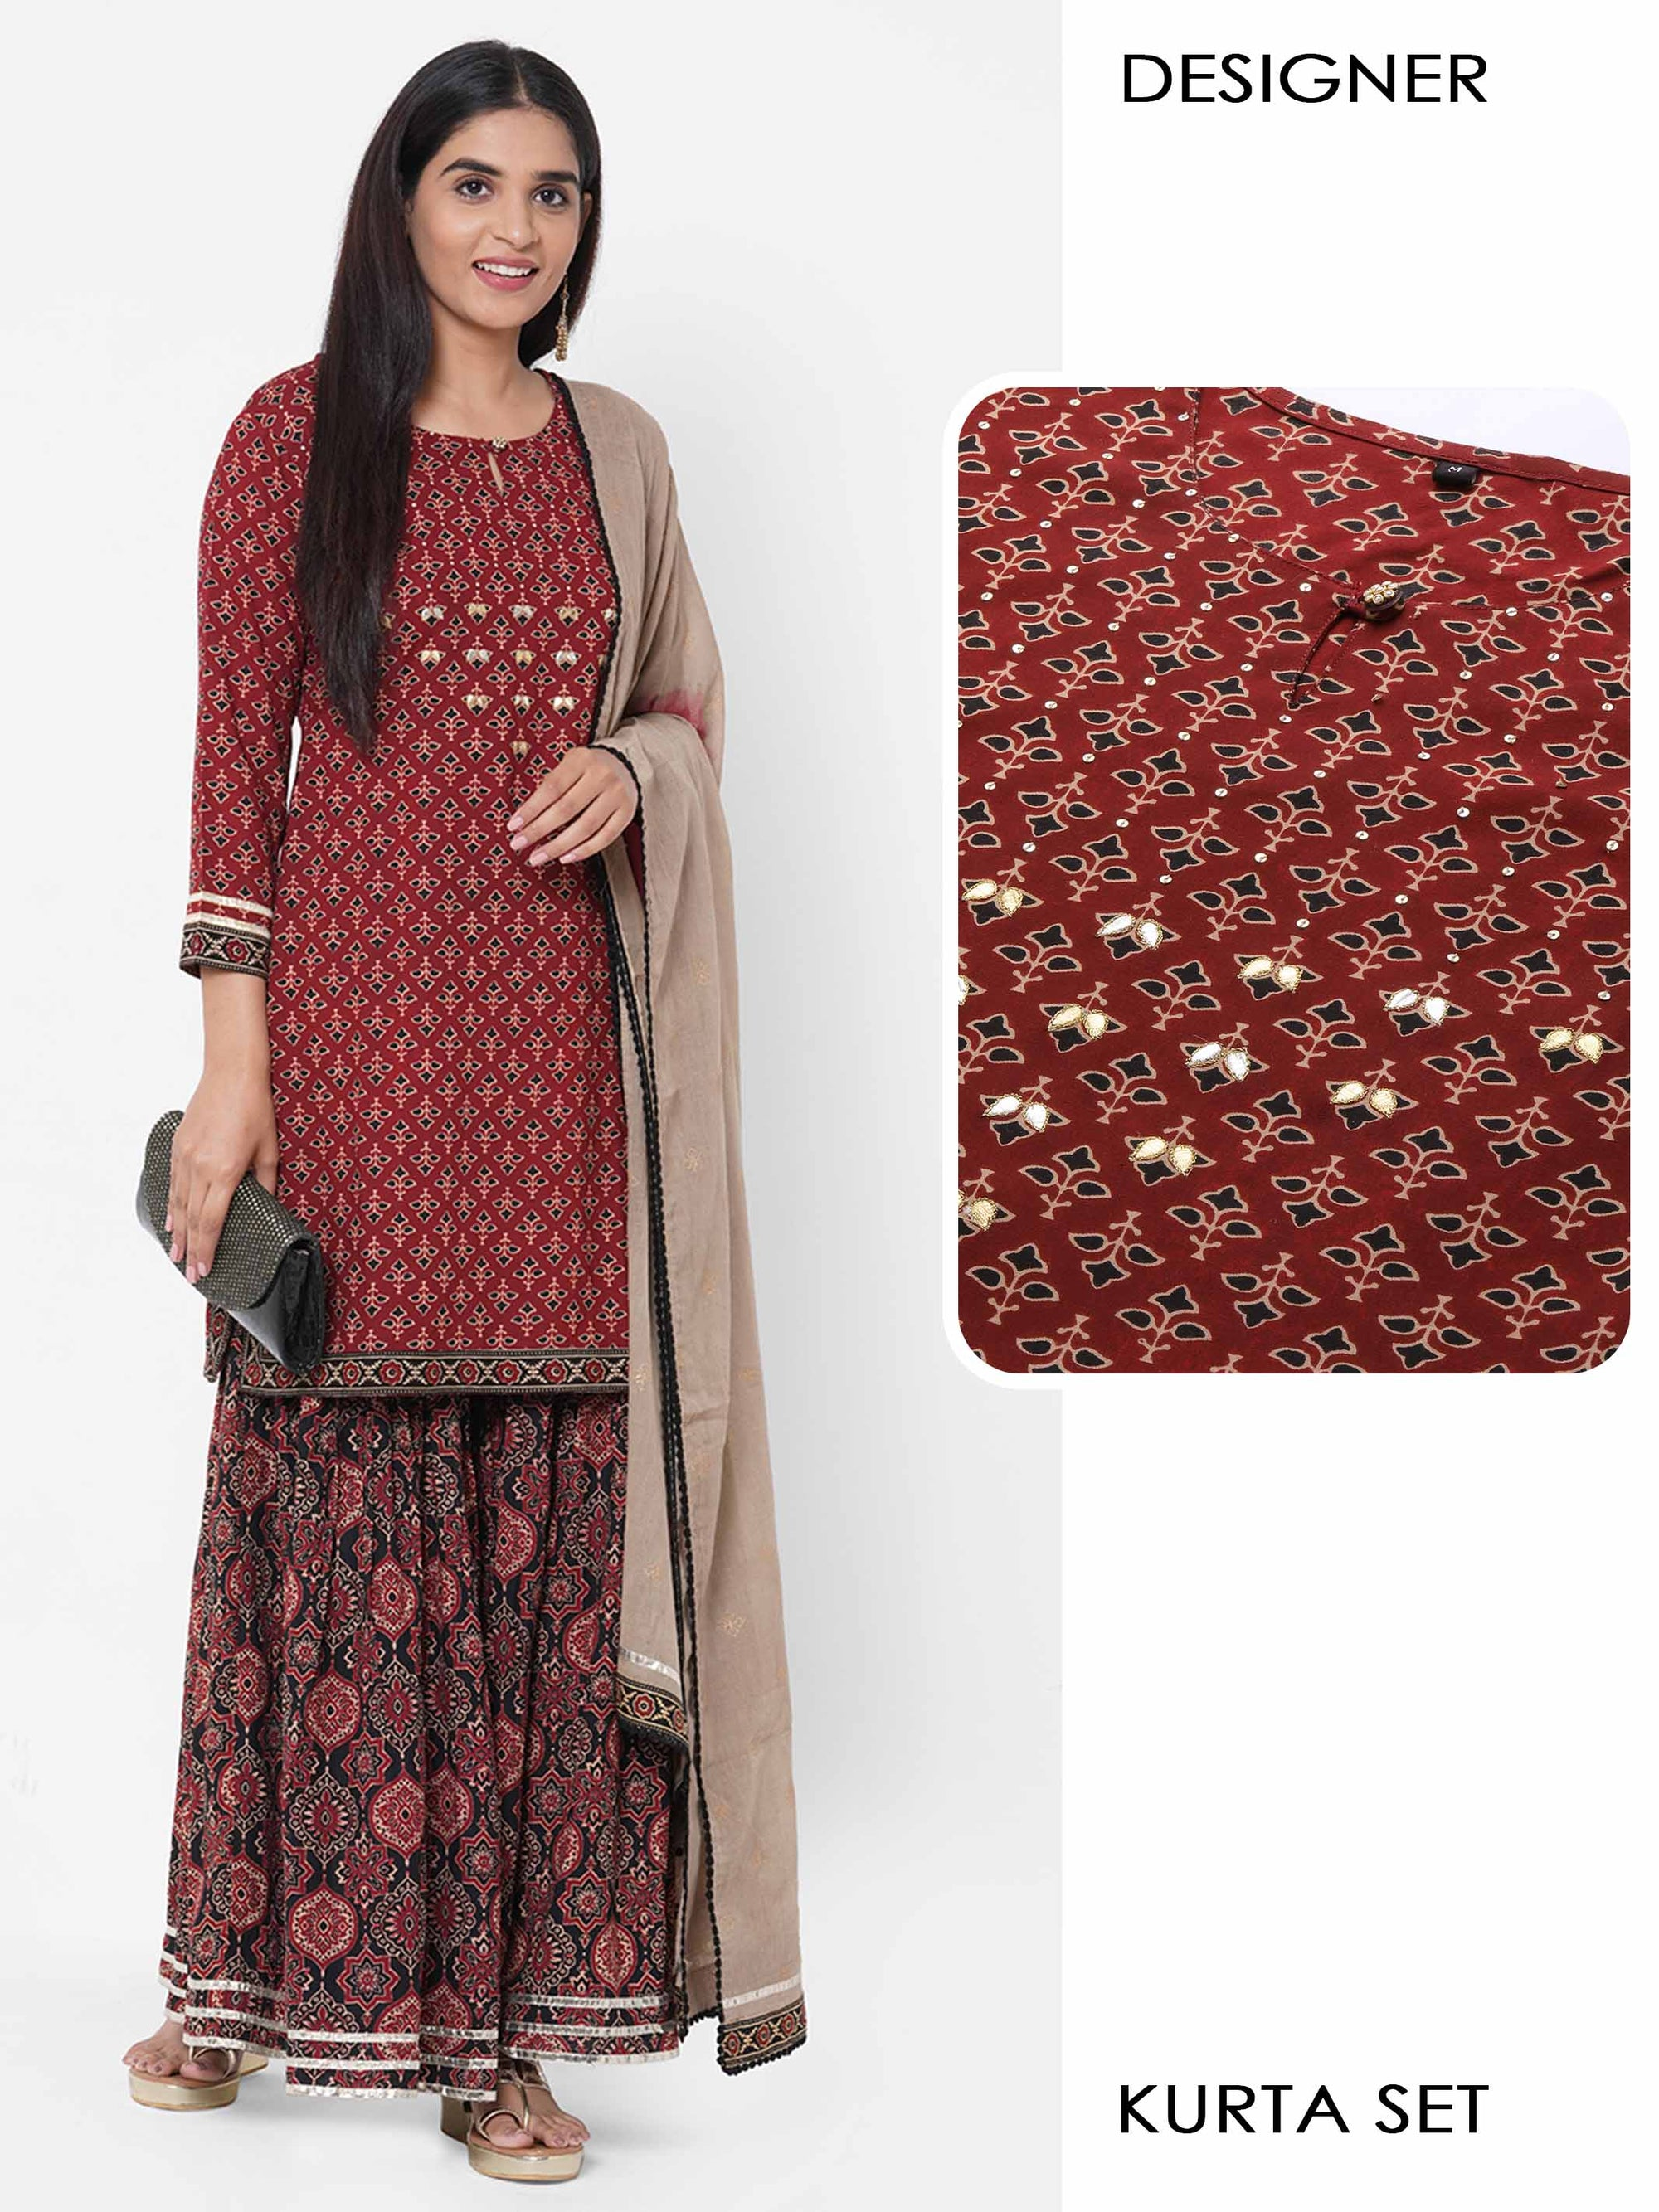 Ethnic Printed & Embellished Kurta with Ethnic printed Sharara & Foil printed Dupatta - Maroon